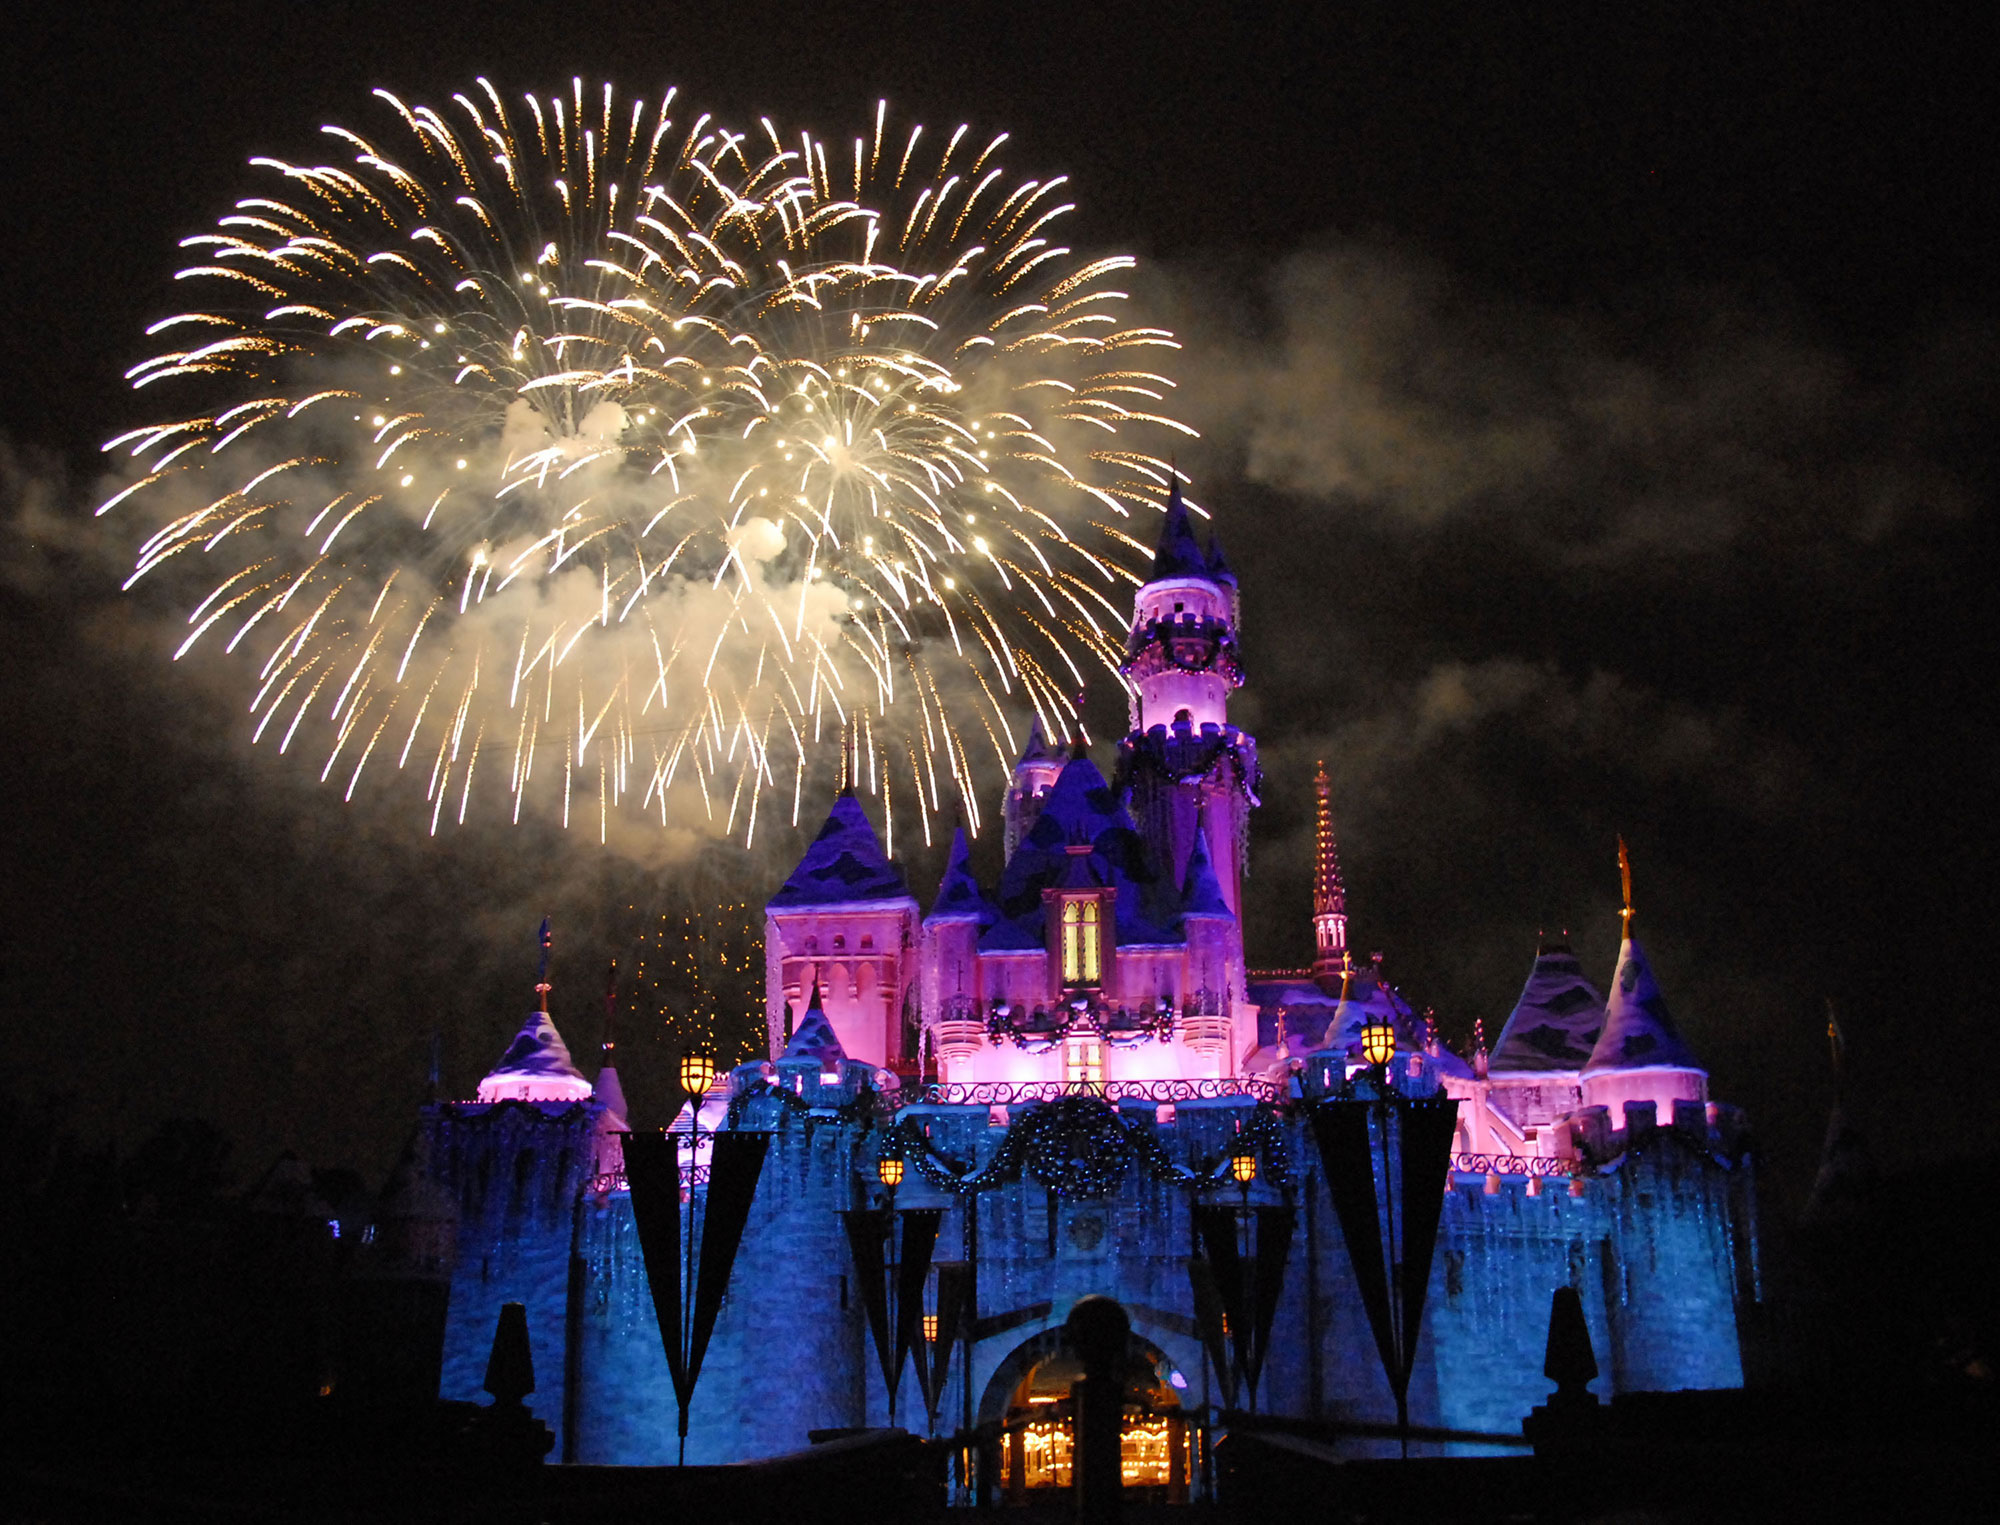 Disney land castle at night with fireworks